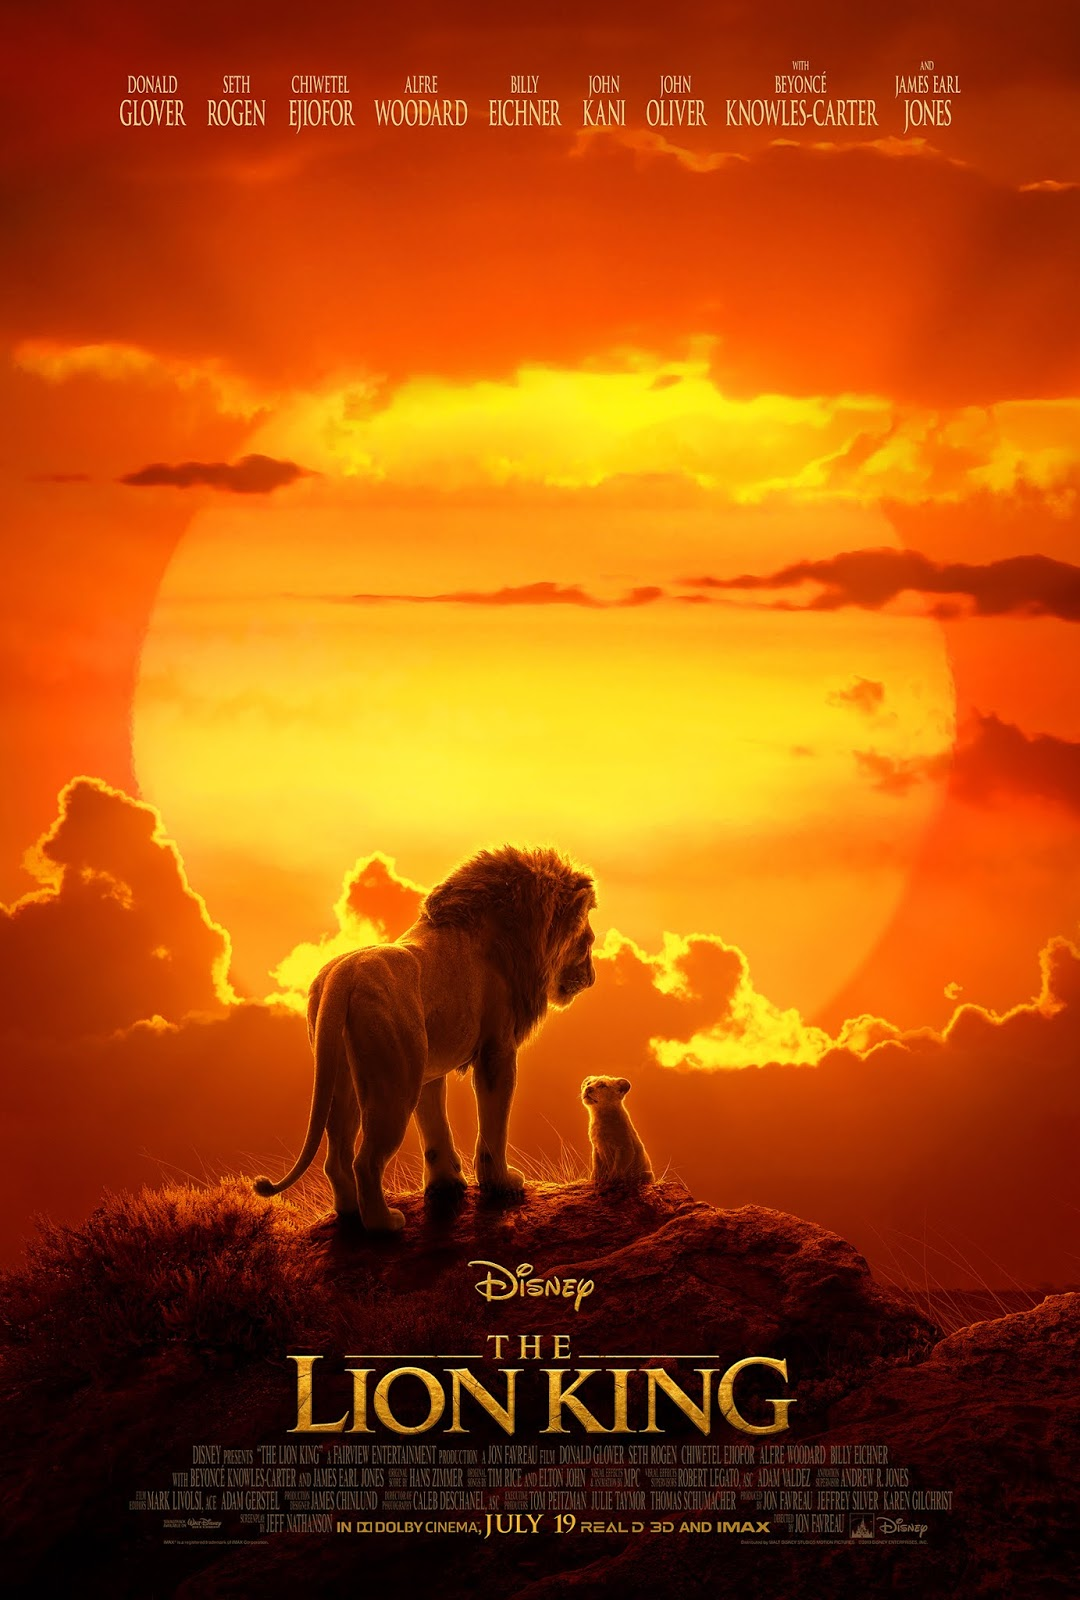 THE LION KING (2019) MOVIE TAMIL DUBBED HD